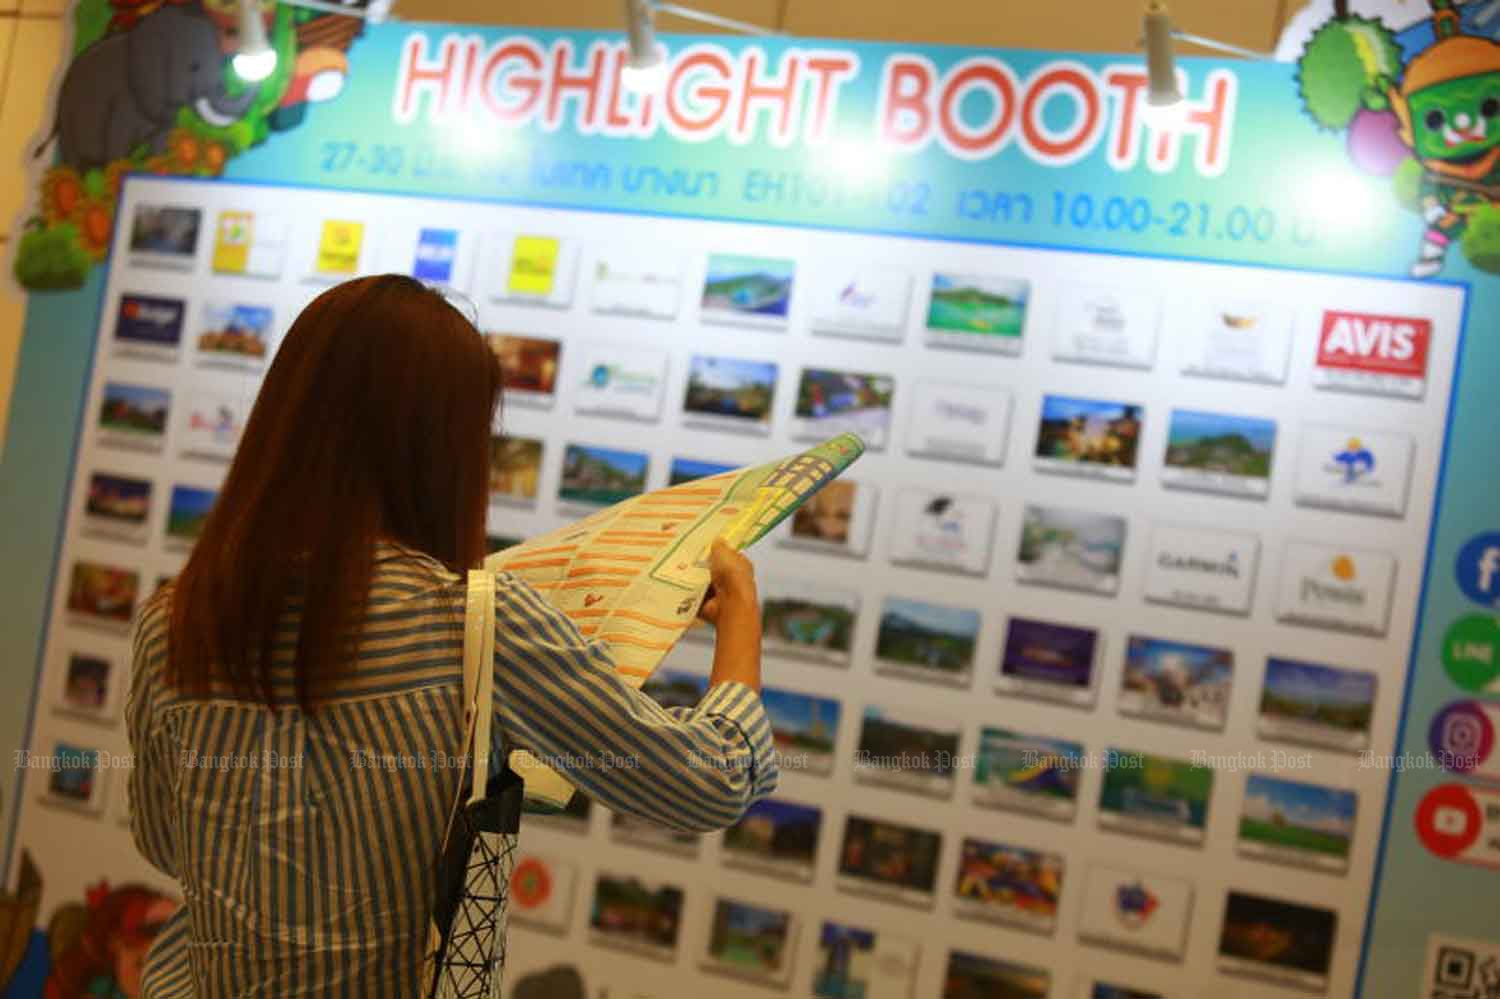 Local tourism stimulus goes under review for third phase